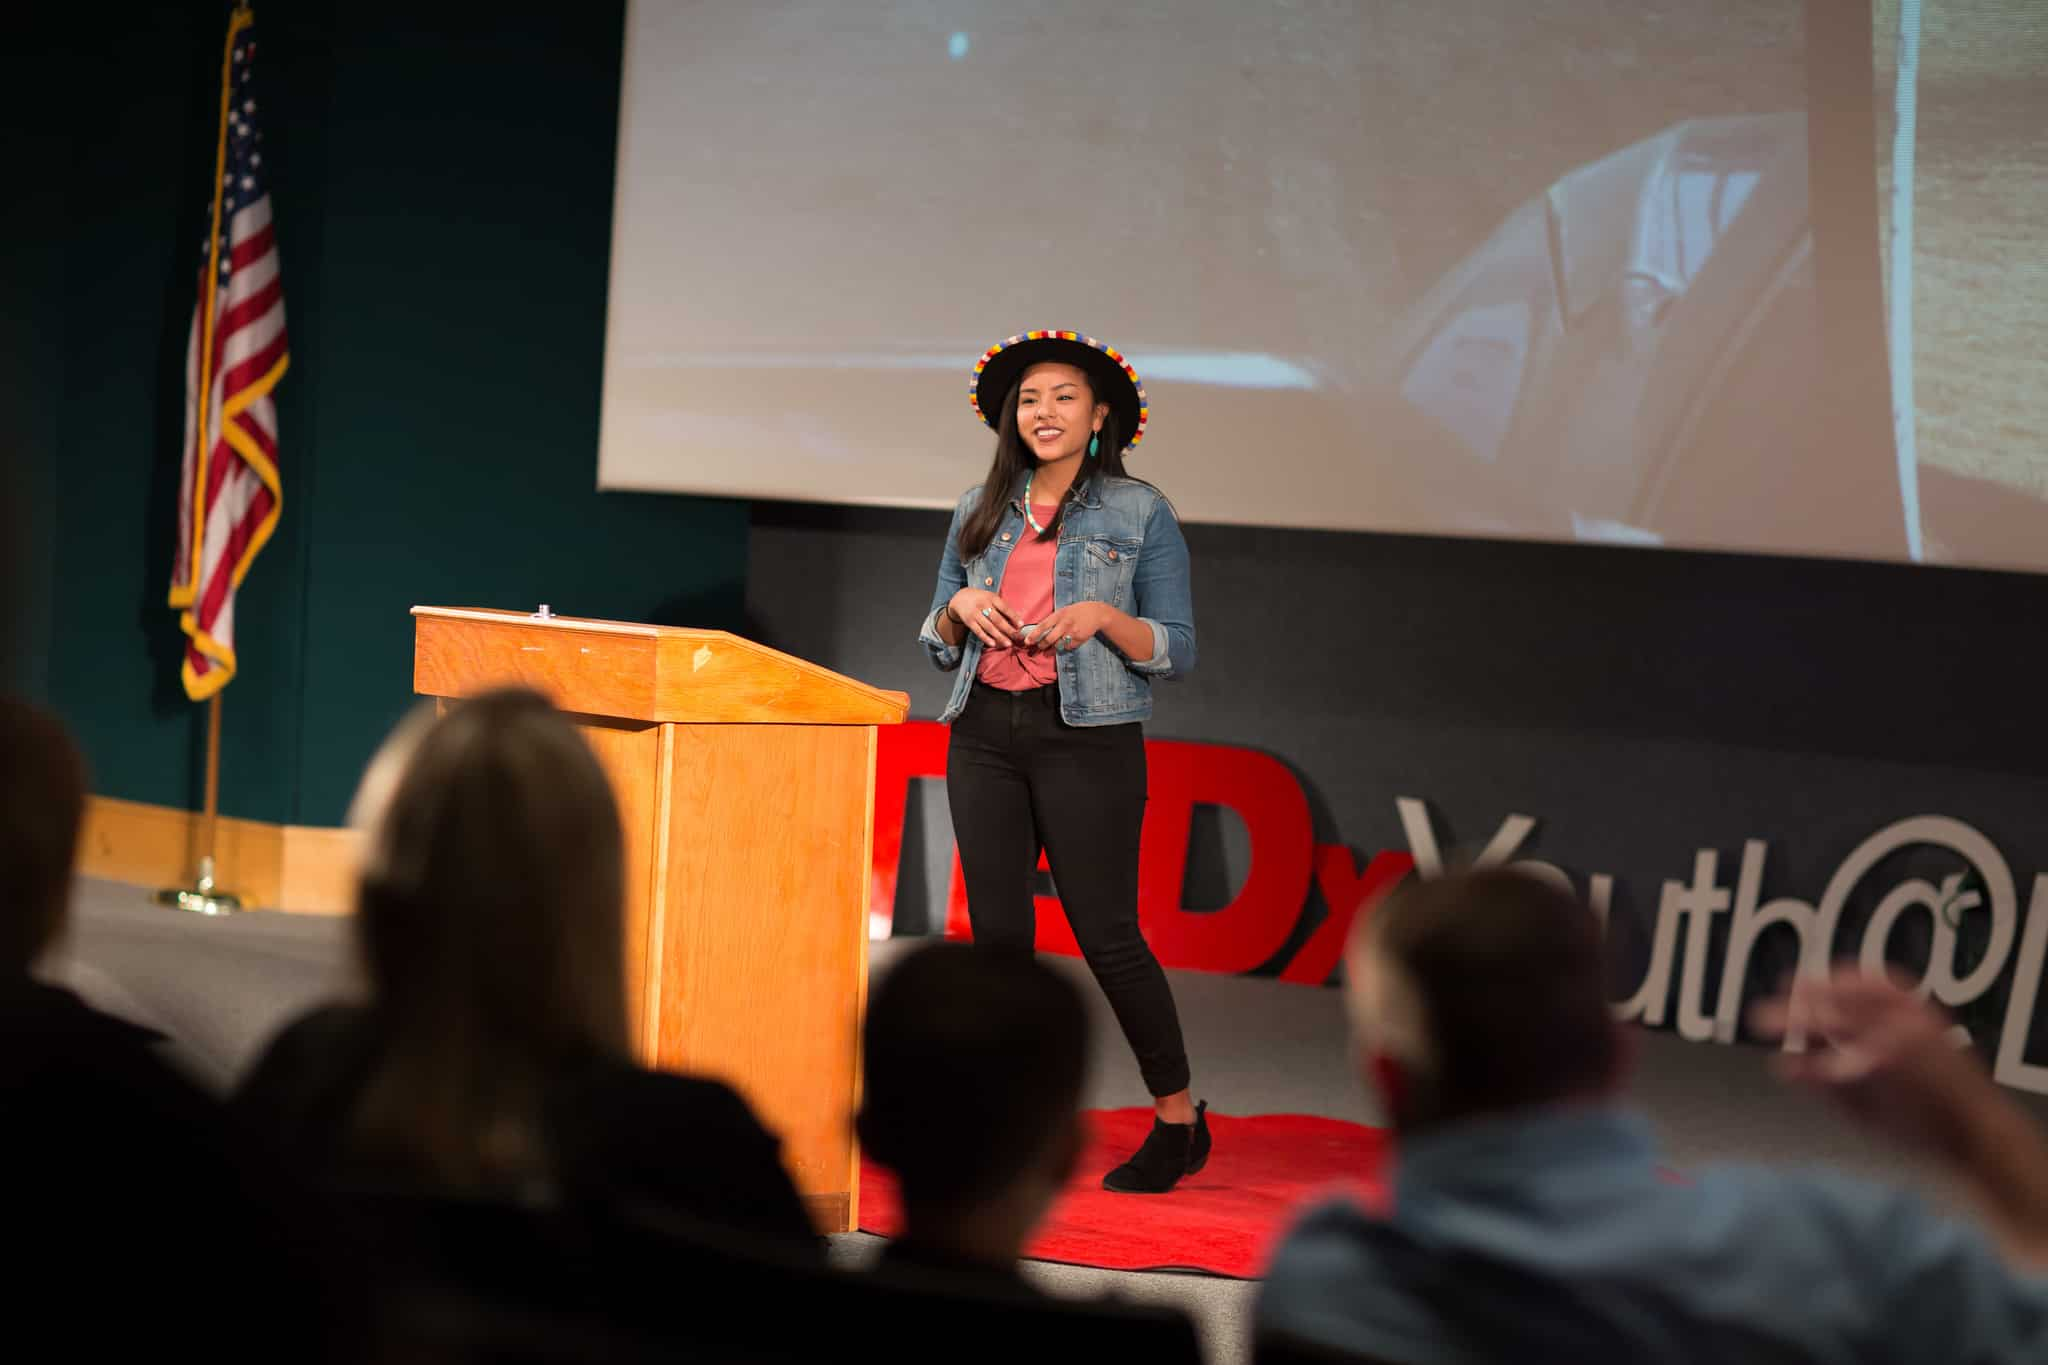 TEDxYouth Speaker 2018